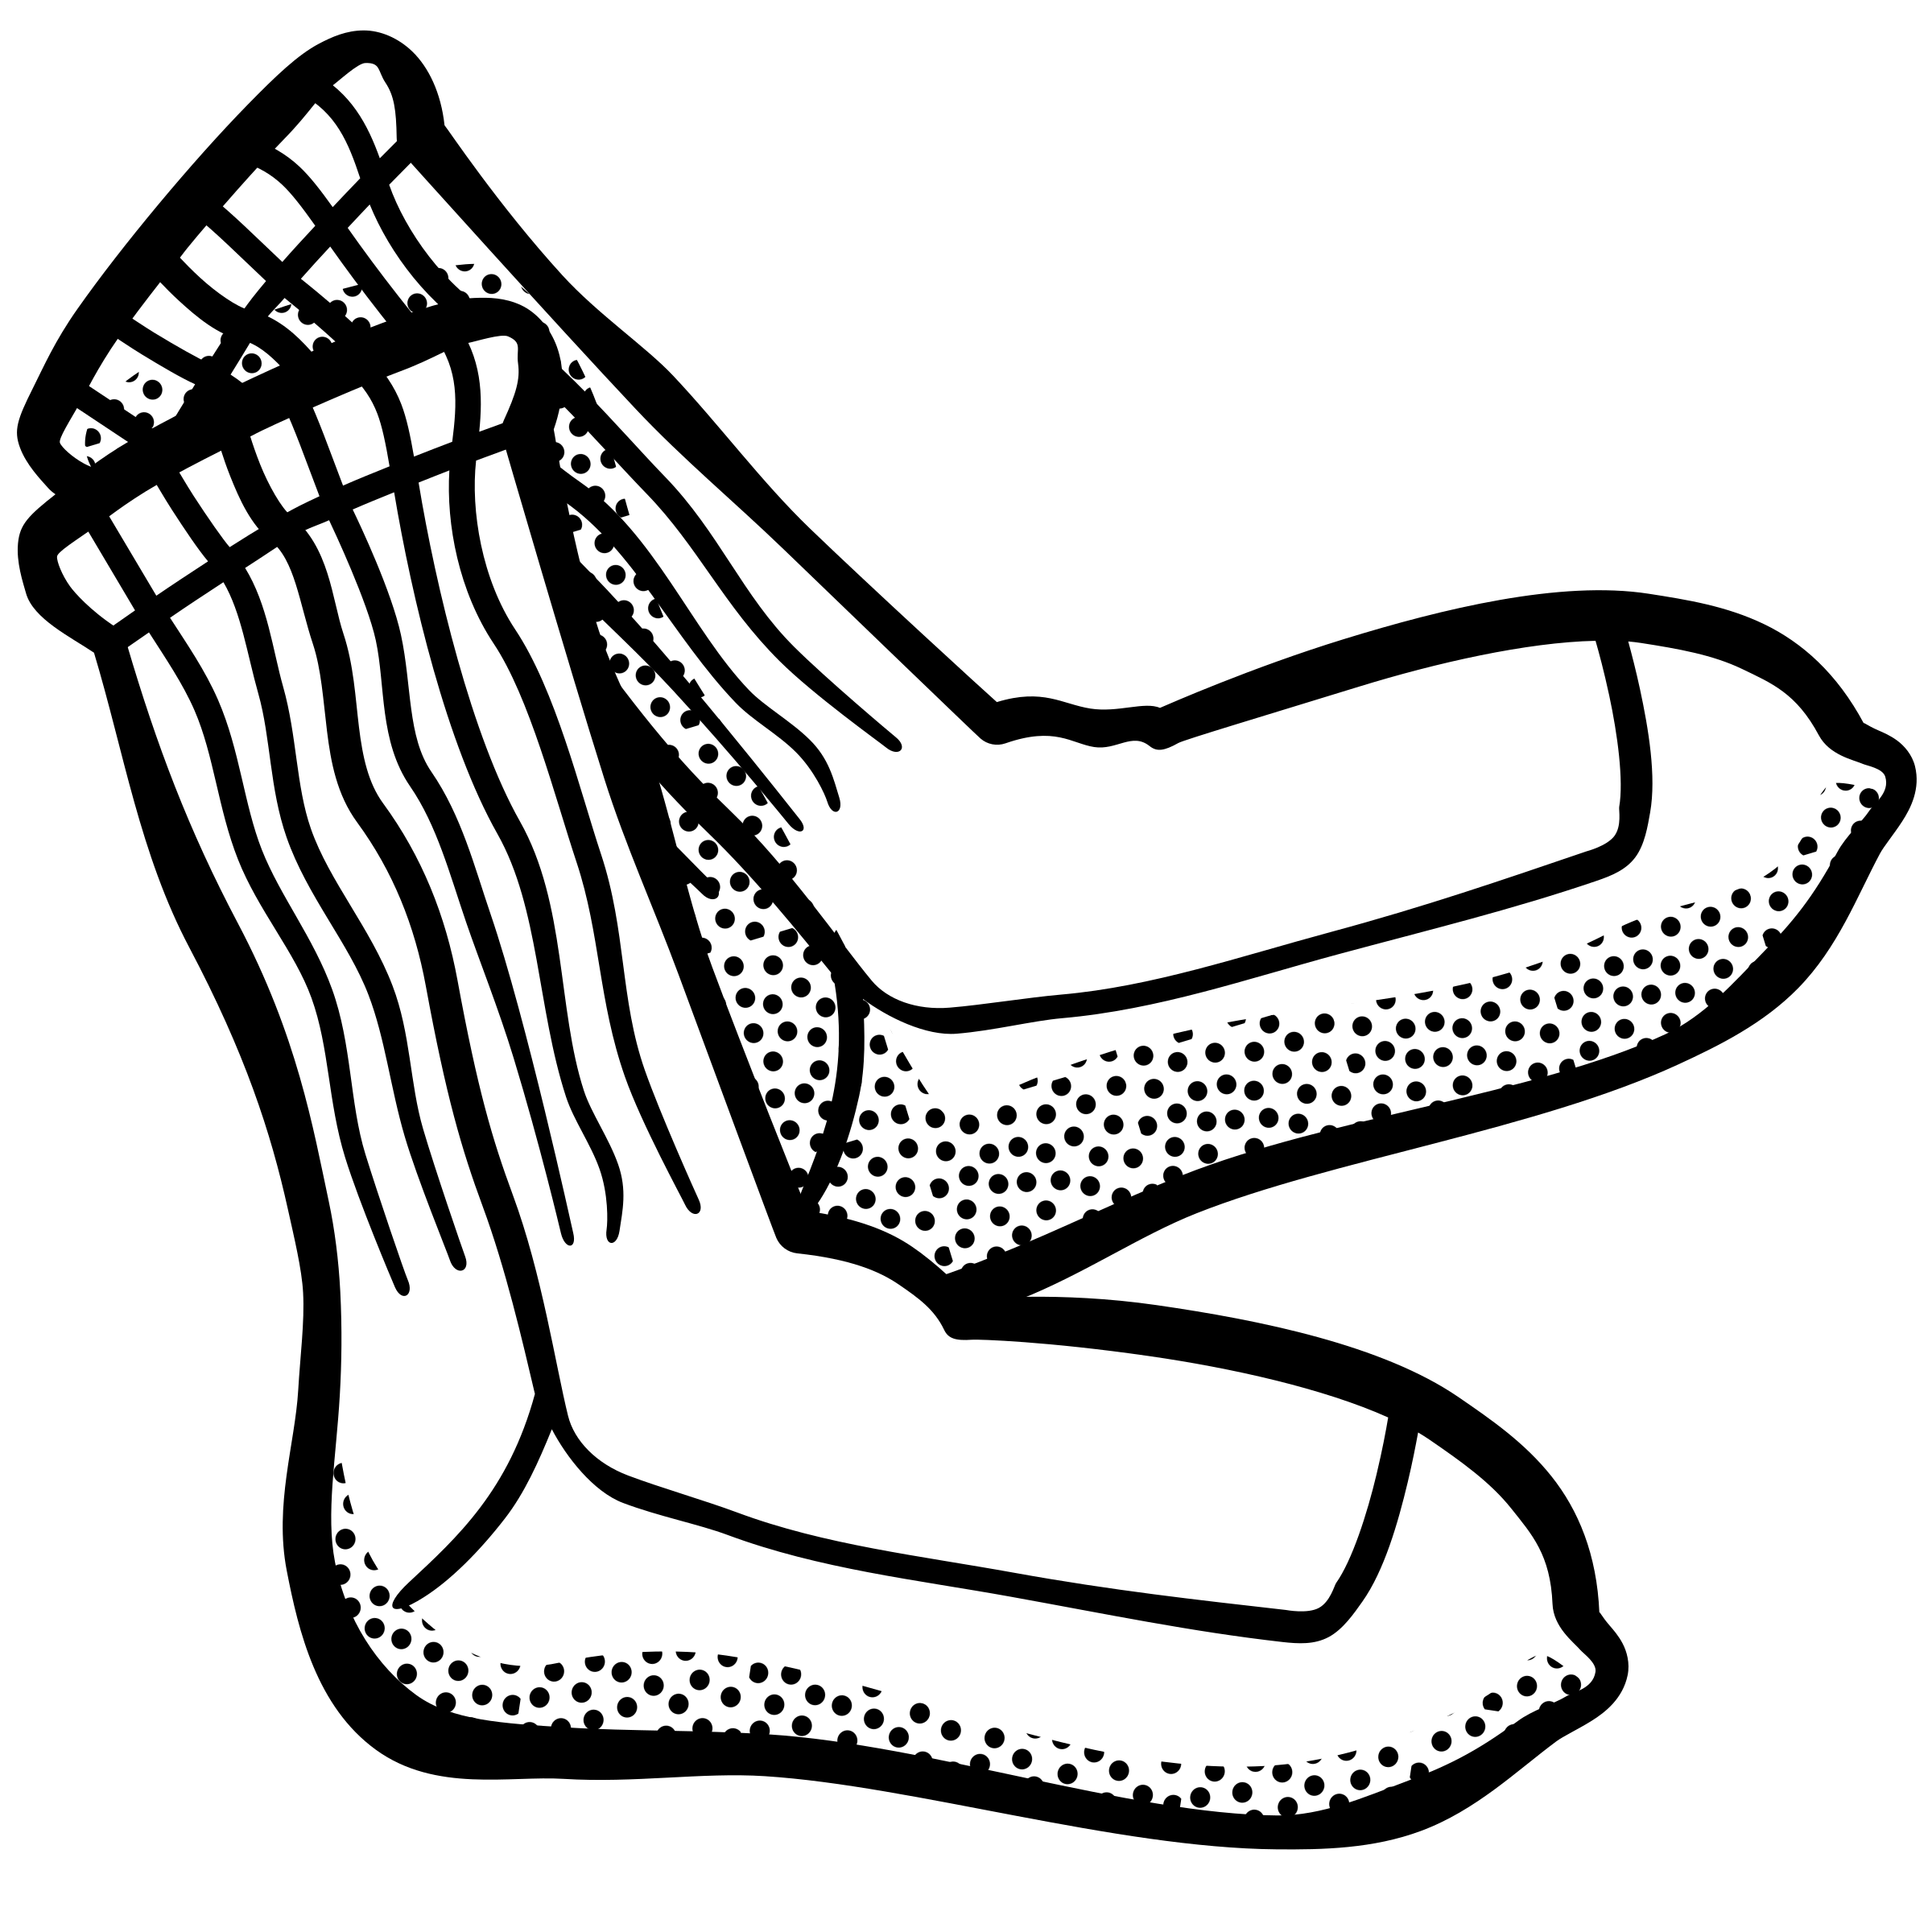 Baseball socks clipart banner free library Socks Drawing at GetDrawings.com | Free for personal use Socks ... banner free library